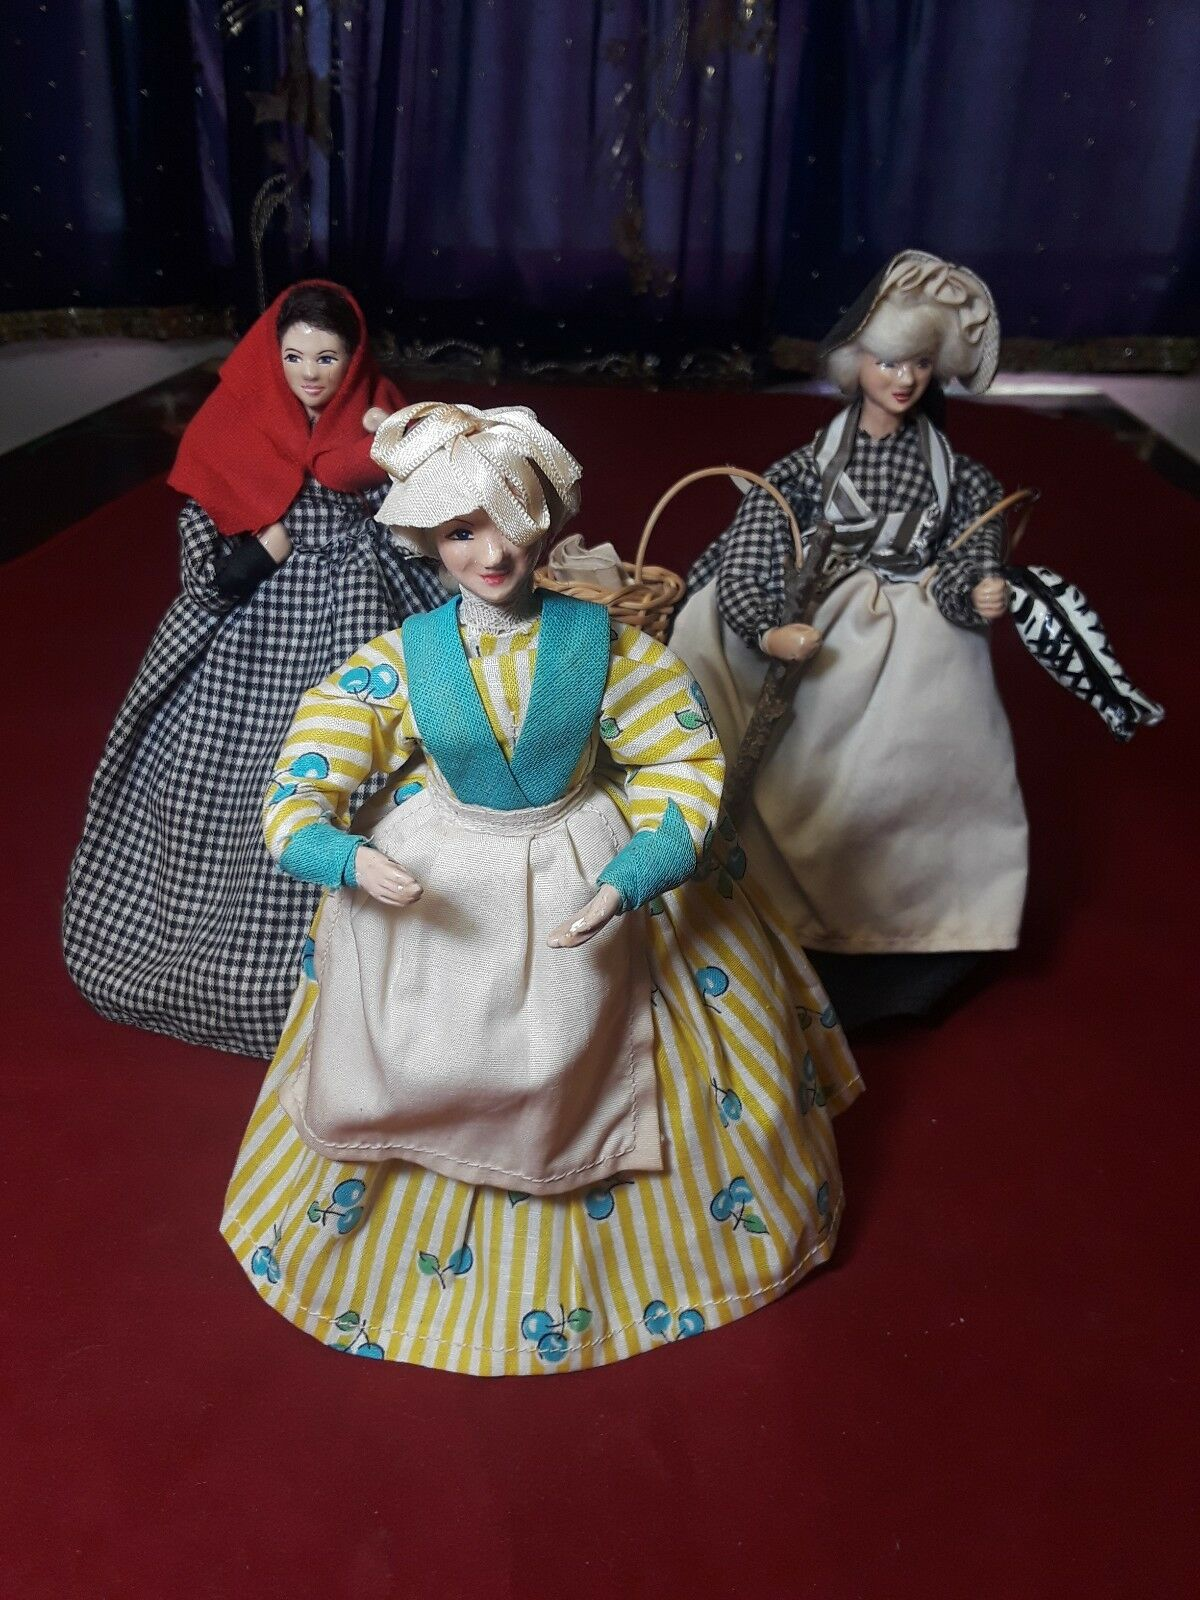 Shallowpool Dolls Mary Kelynack & Friends Set of 3 Dolls 8  Tall